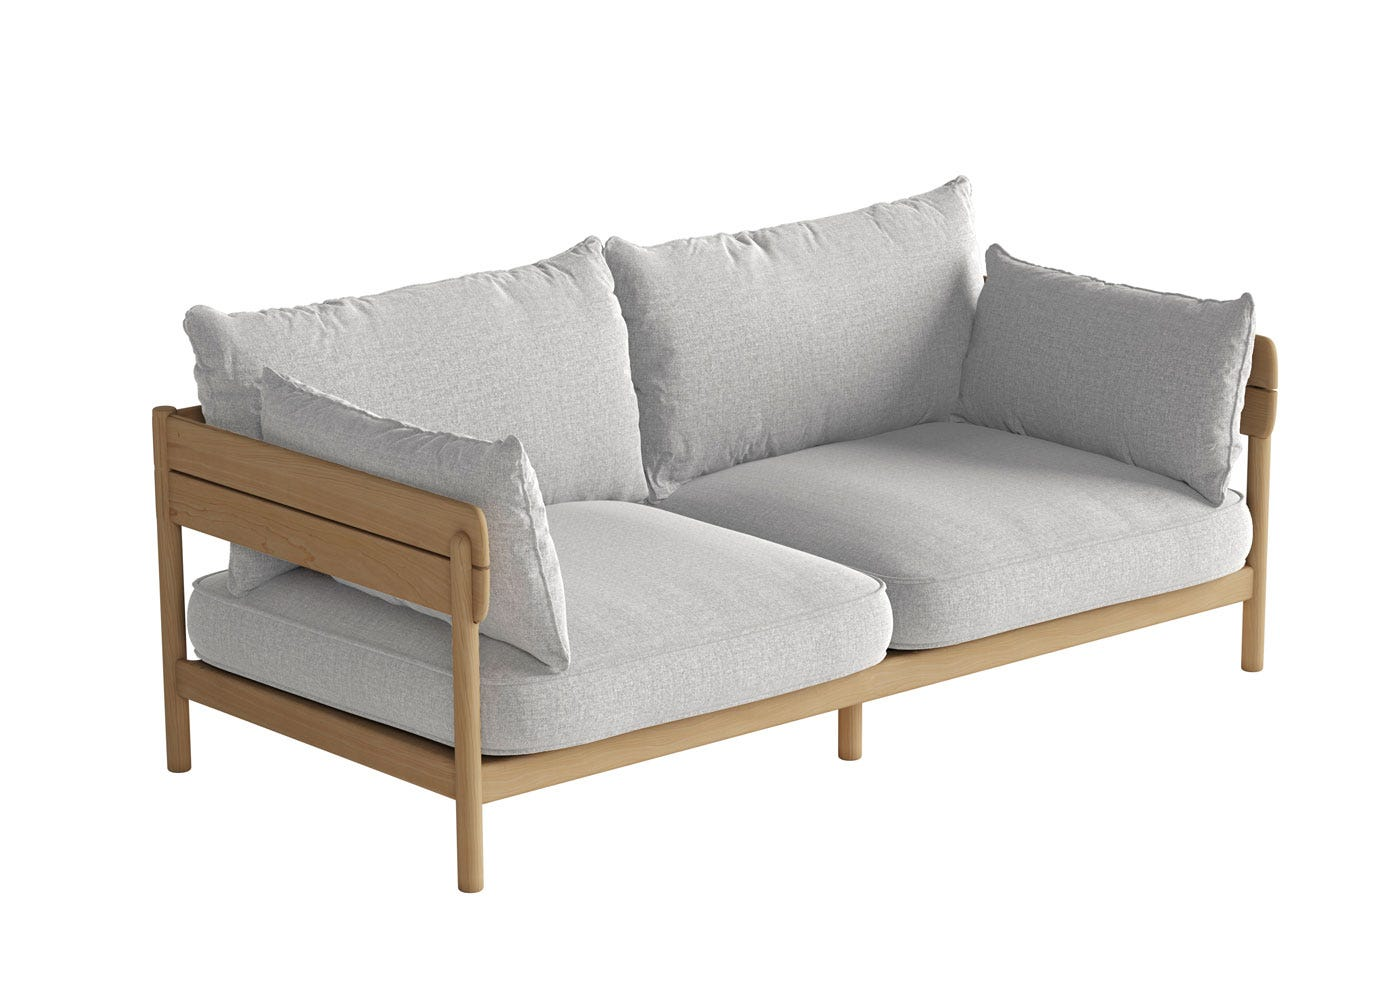 As shown: Tanso Outdoor 2 Seater Sofa